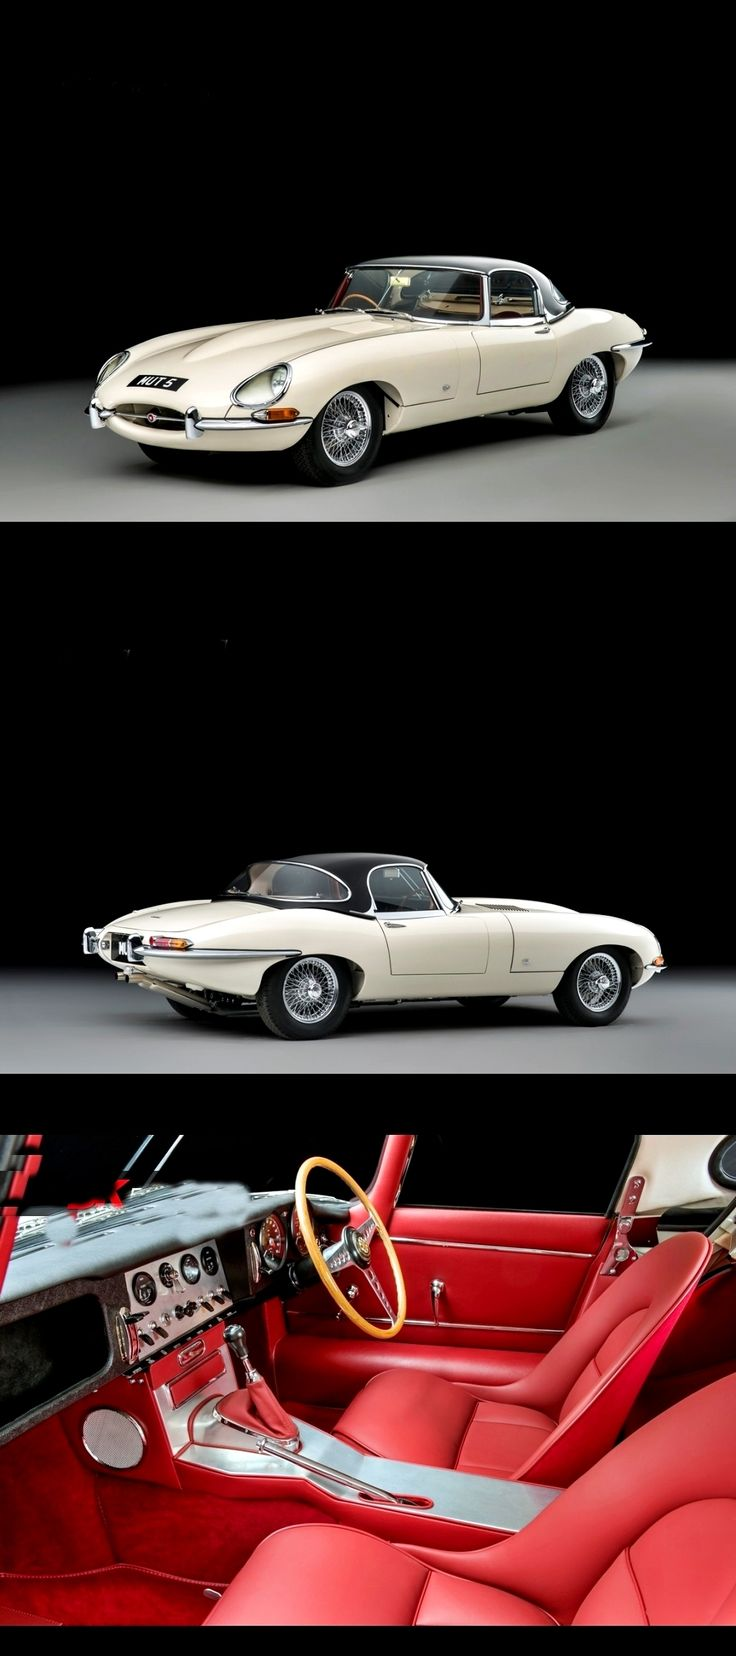 1961 Jaguar E-Type SI Flat Floor Roadster with Outside Bonnet Locks